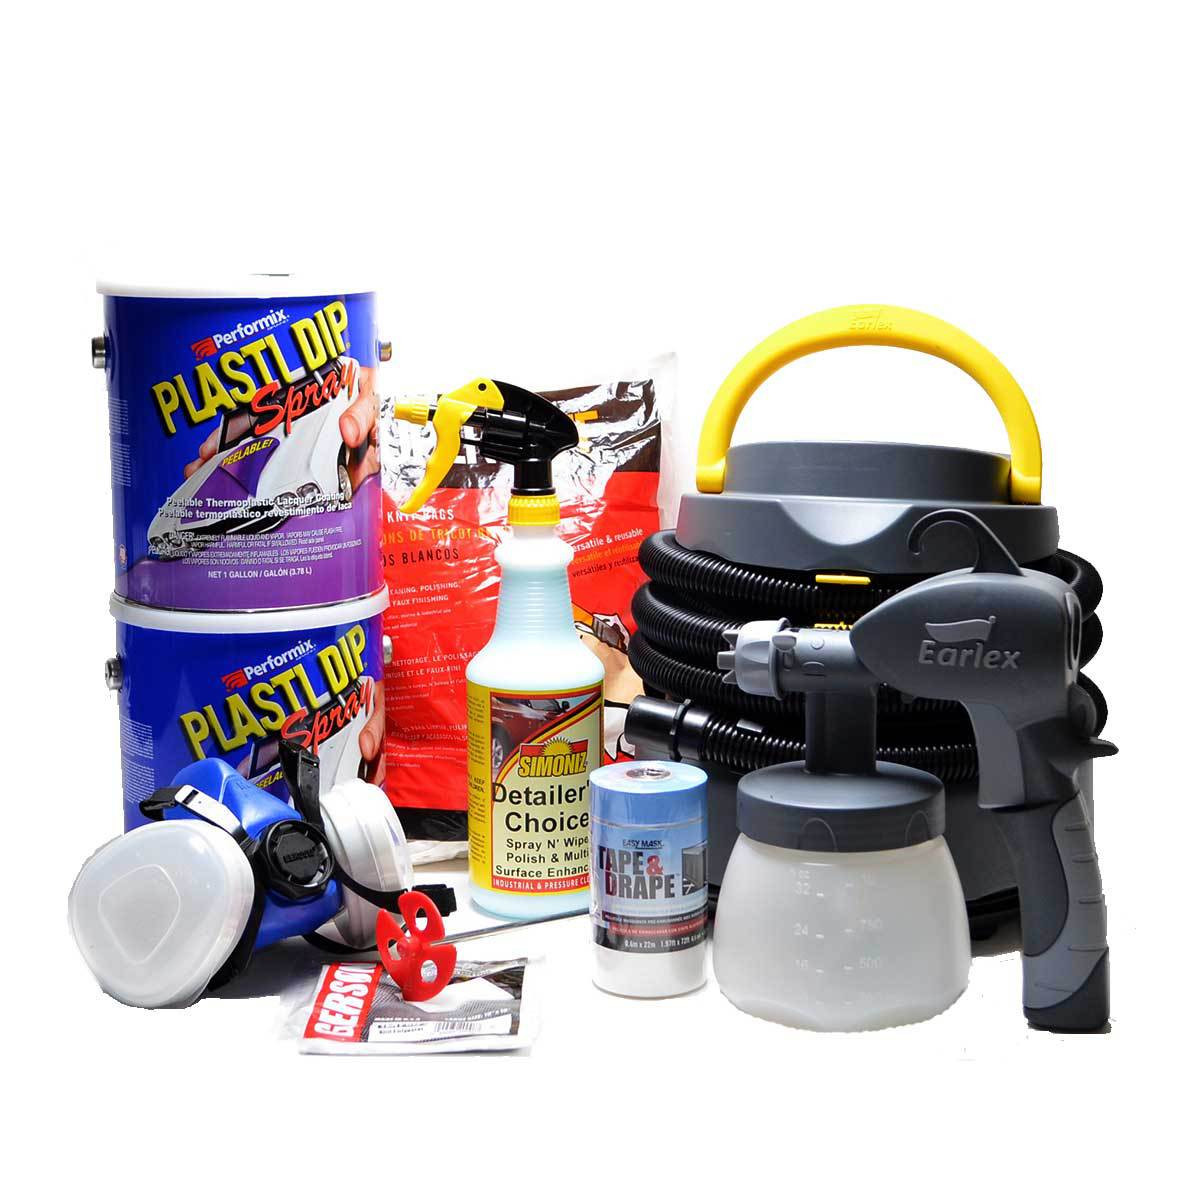 Plasti Dip Spray 2 Gallon Kit - Muscle Colors: Sprayer